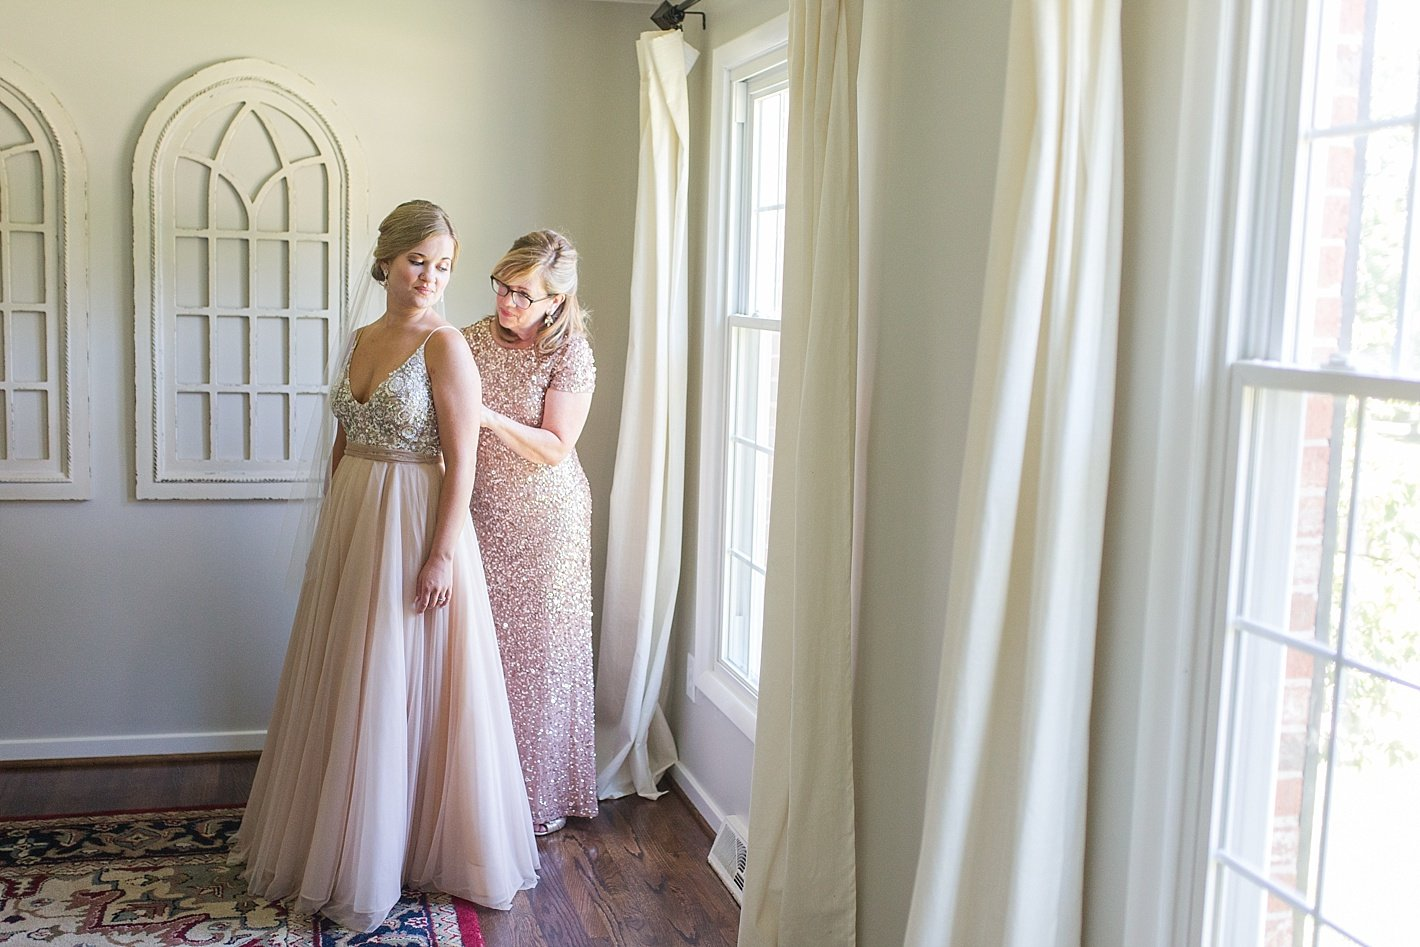 mother of the bride helping get ready, BHLDN wedding gown, gold mother of the bride dress